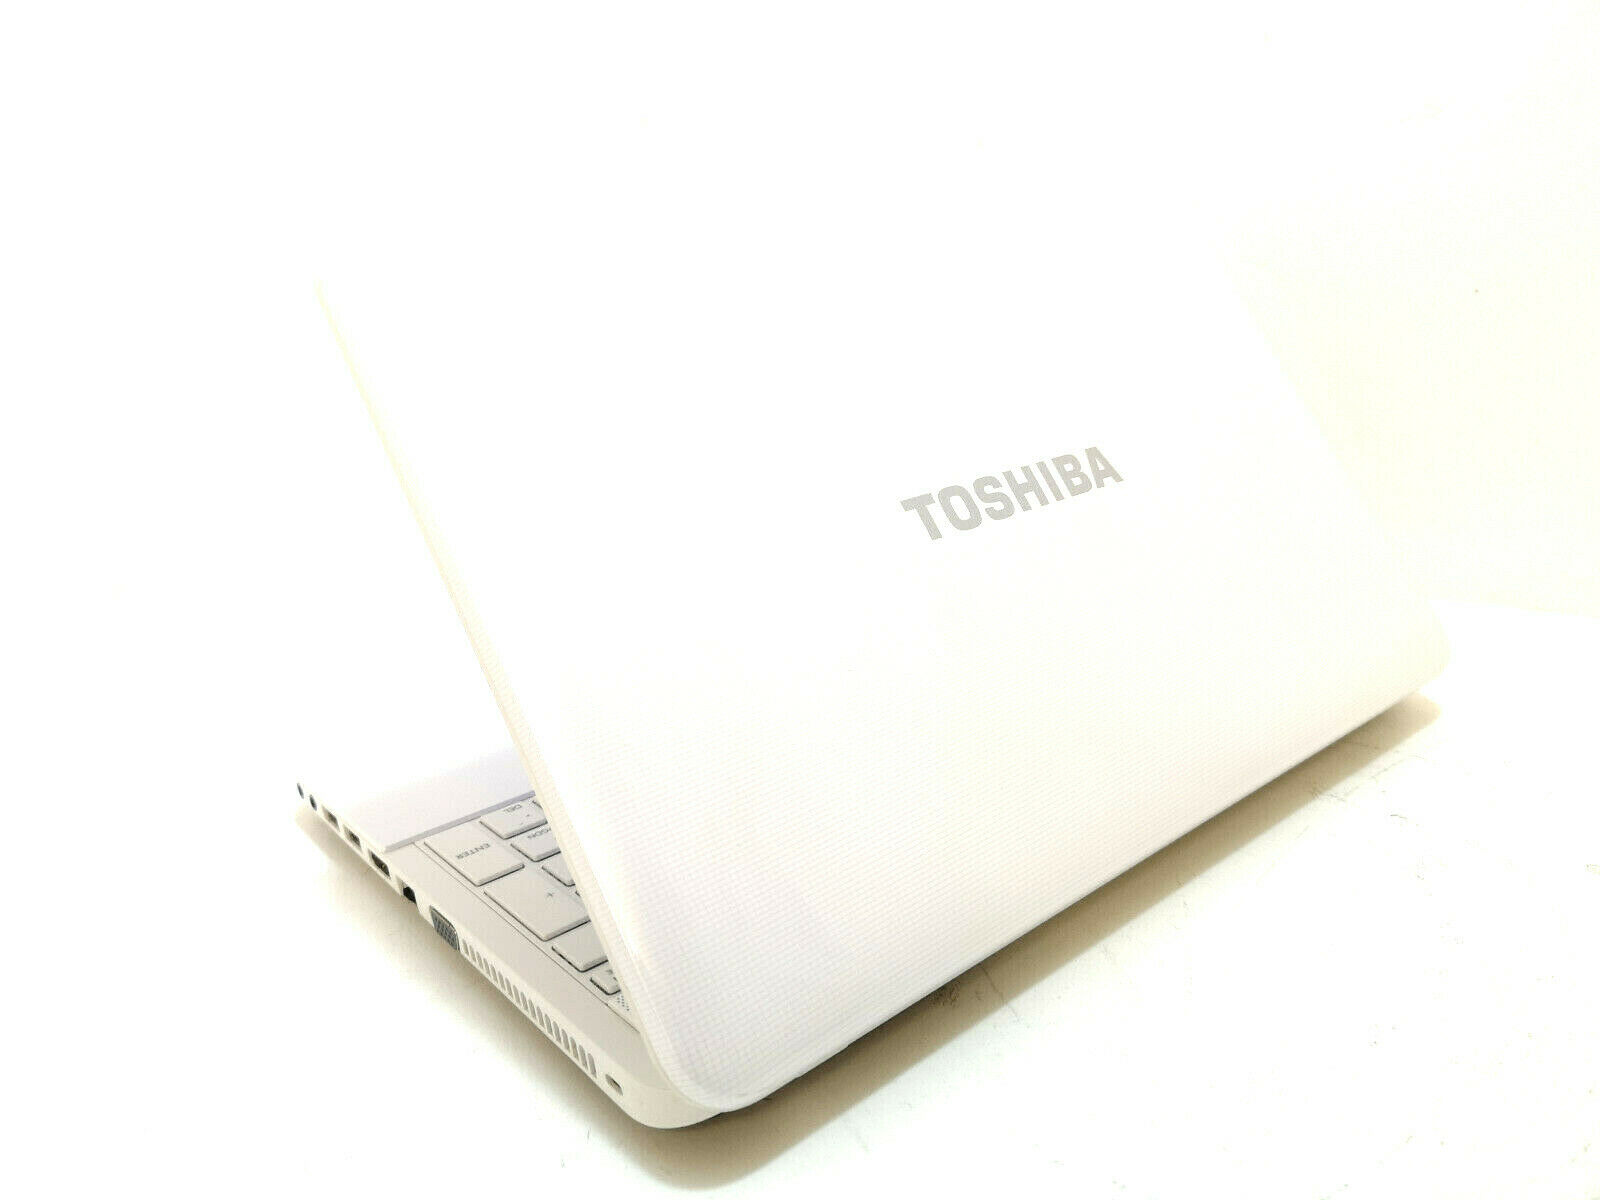 Toshiba Satellite L850 No 6